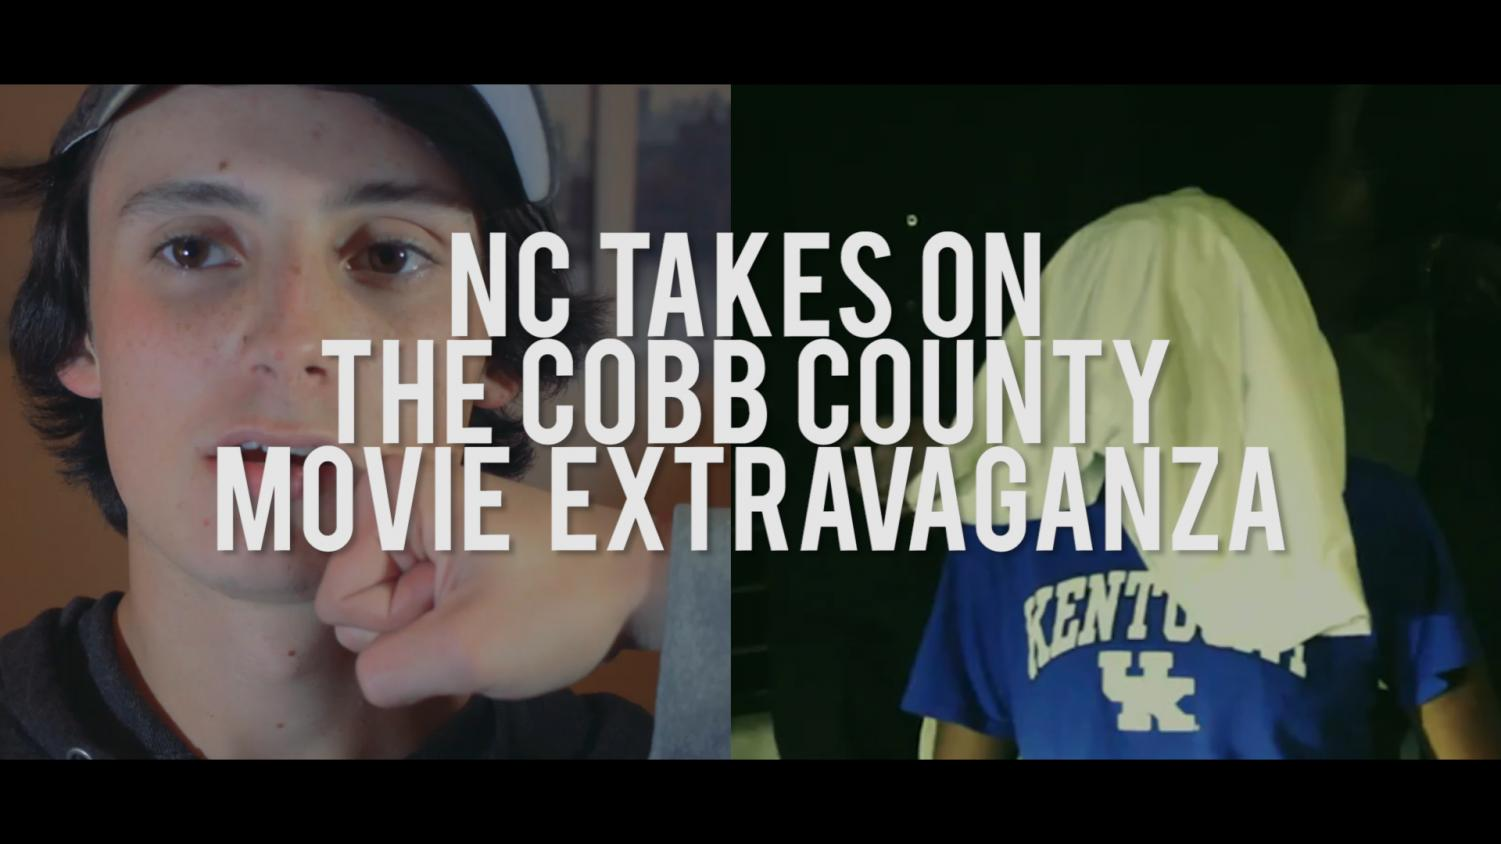 The annual Cobb County Film Fest allowed for creativity across the county to shine through.